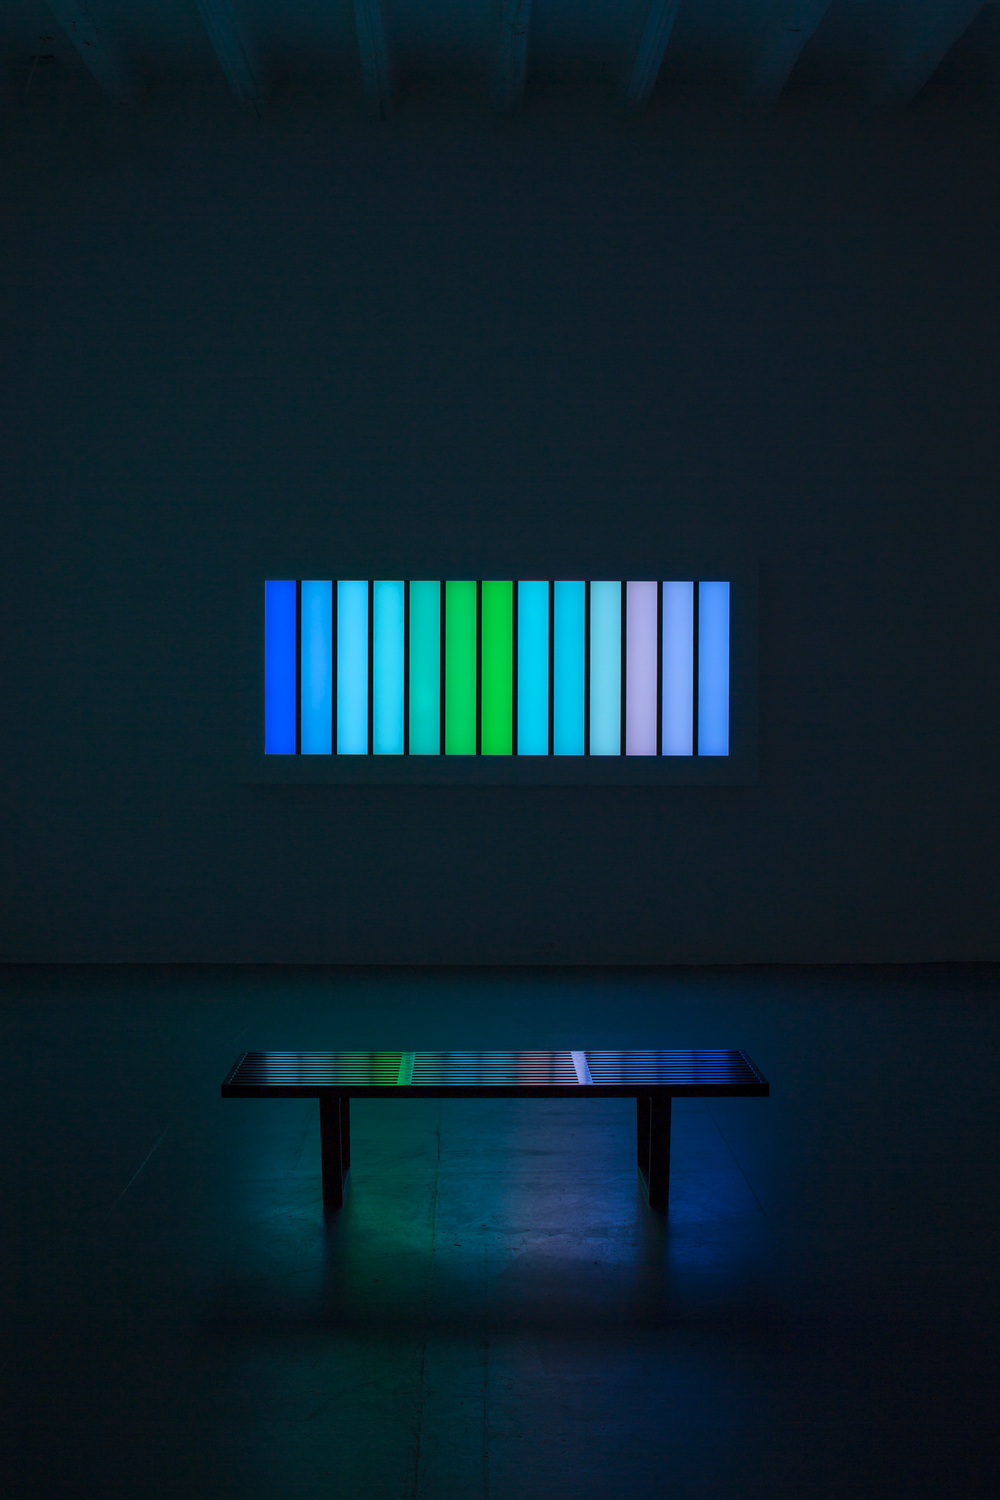 Coded Spectrum, 2012